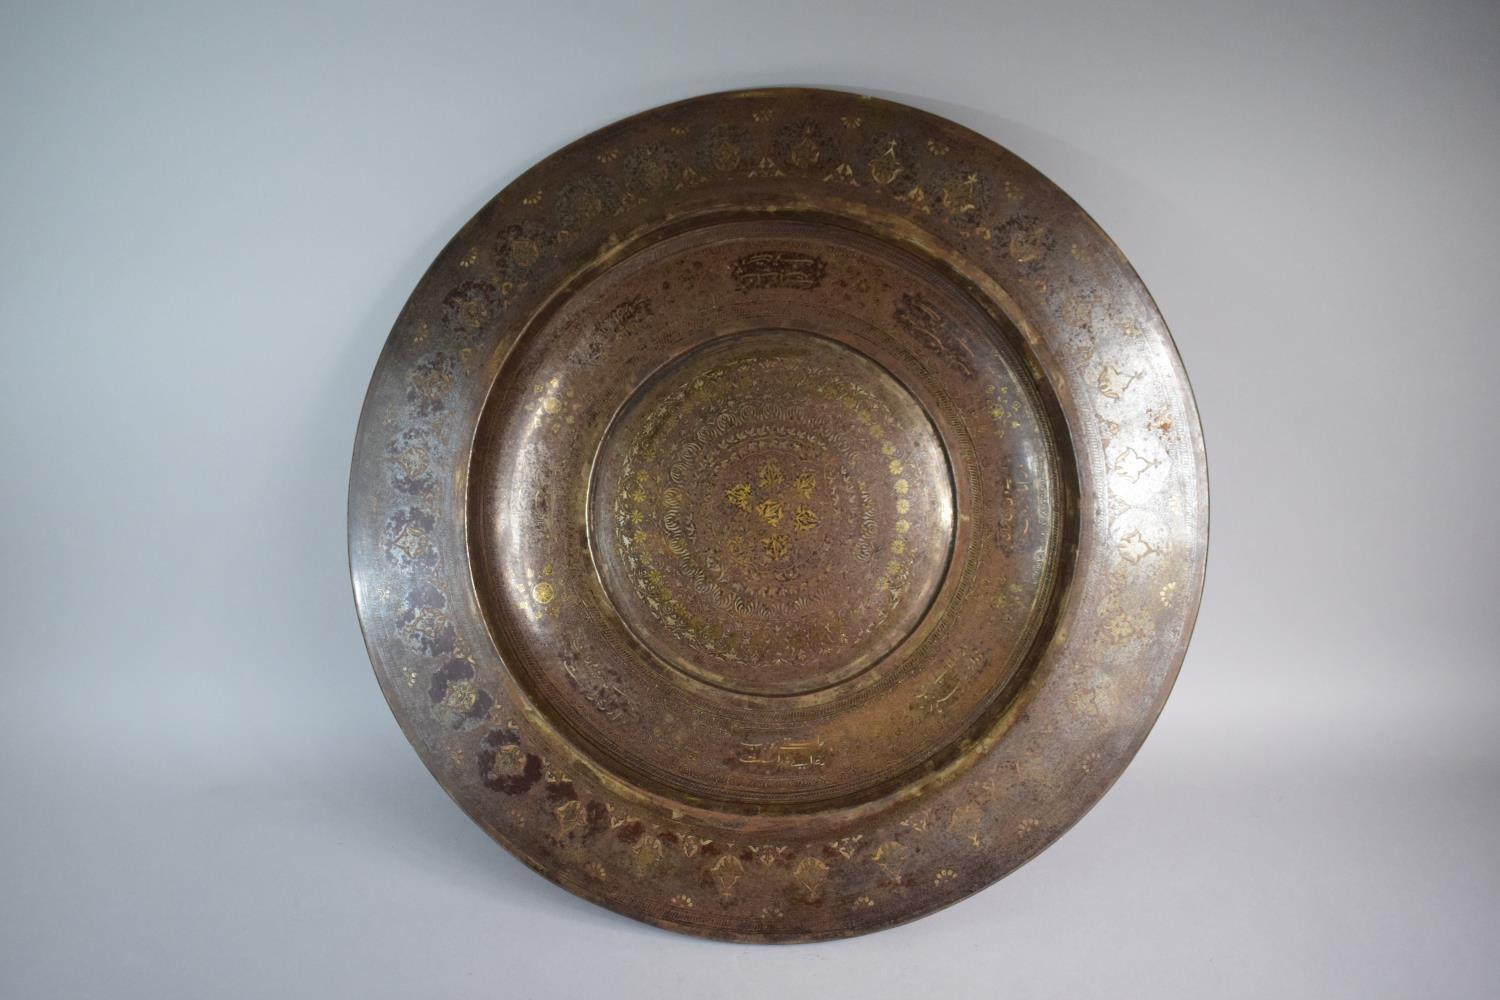 Lot 114 - A North Indian or Persian Qajar Metal Charger with Geometric and Islamic Decoration some in Gold and